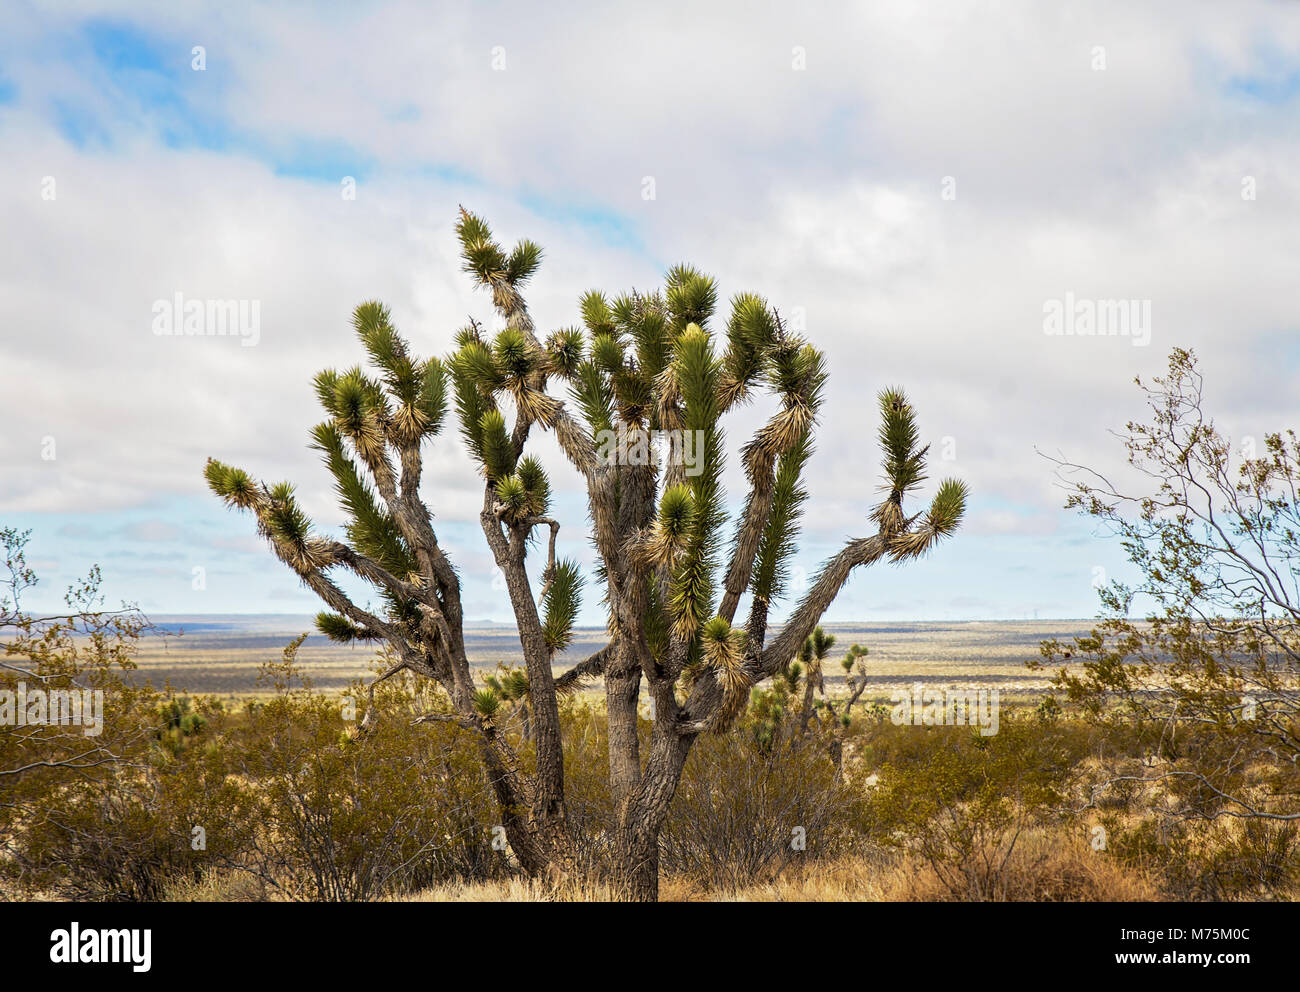 a joshua tree in a spring time desert landscape in nevada stock